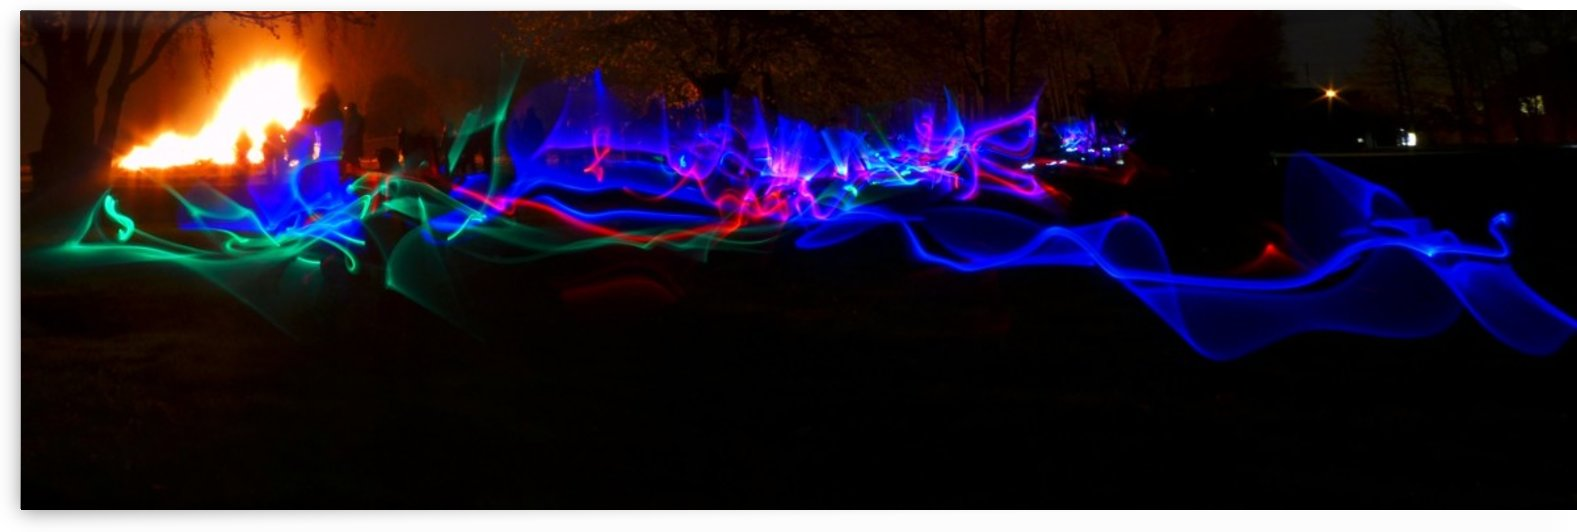 Bonfire lightsabres by Andy Jamieson